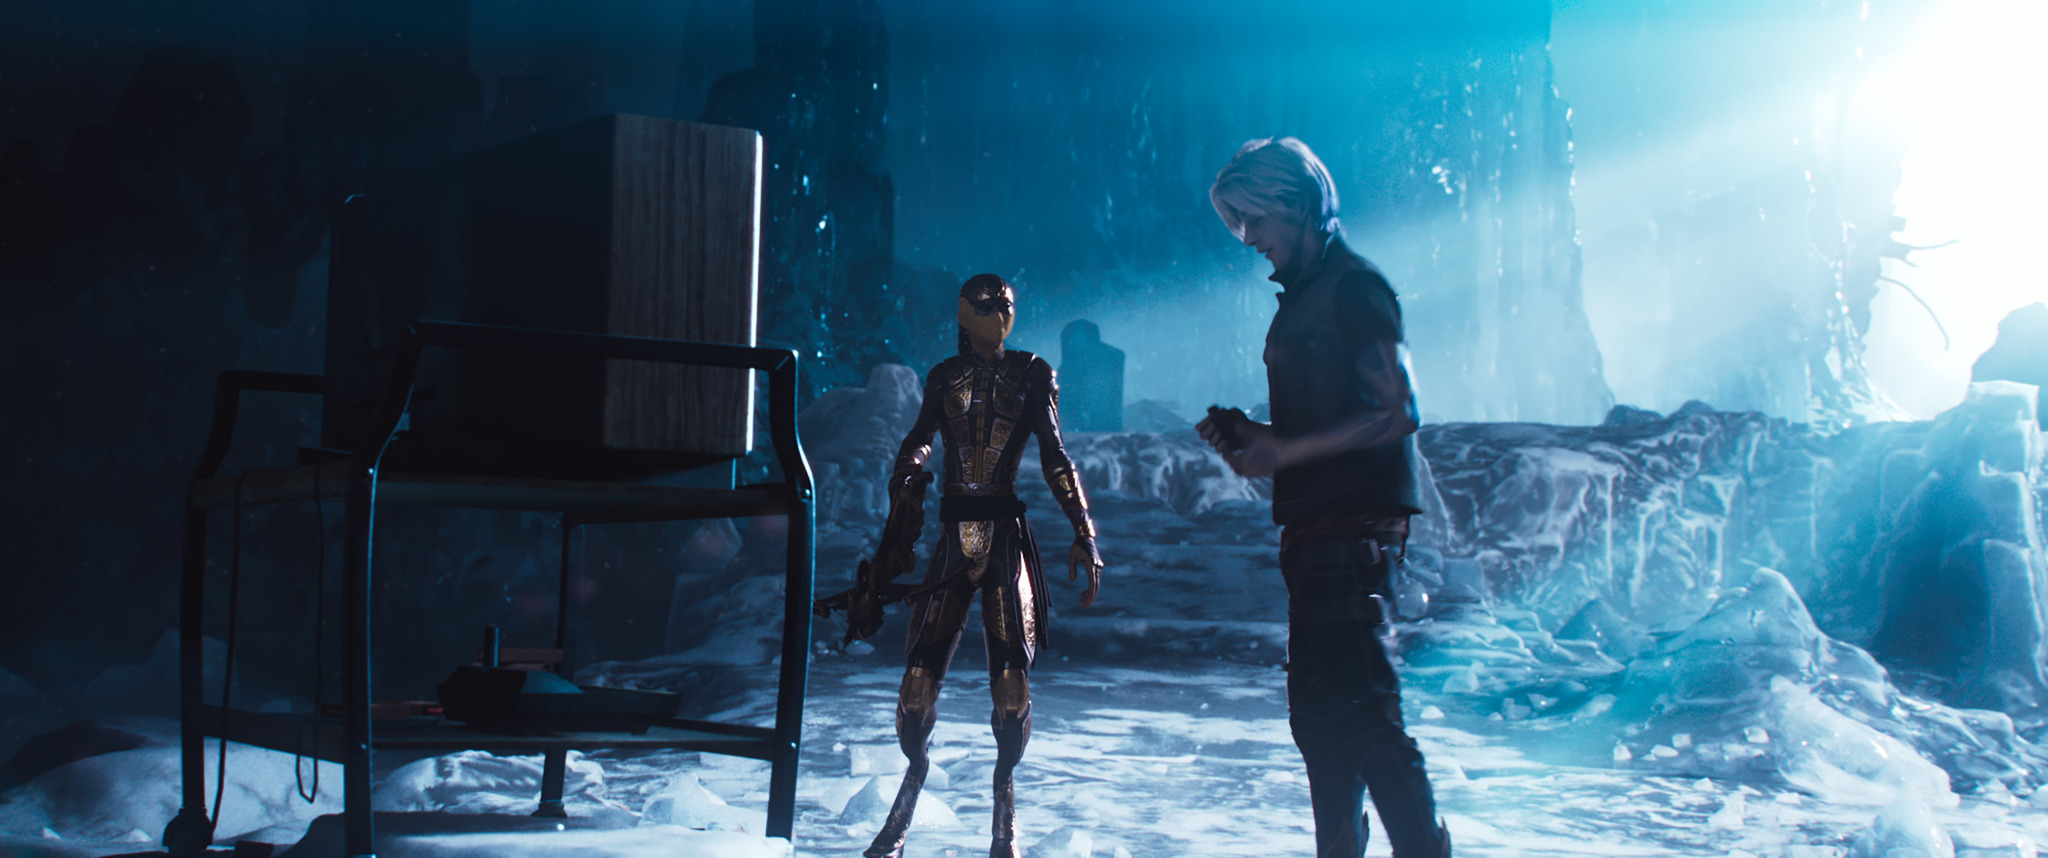 Ready player one netflix streaming